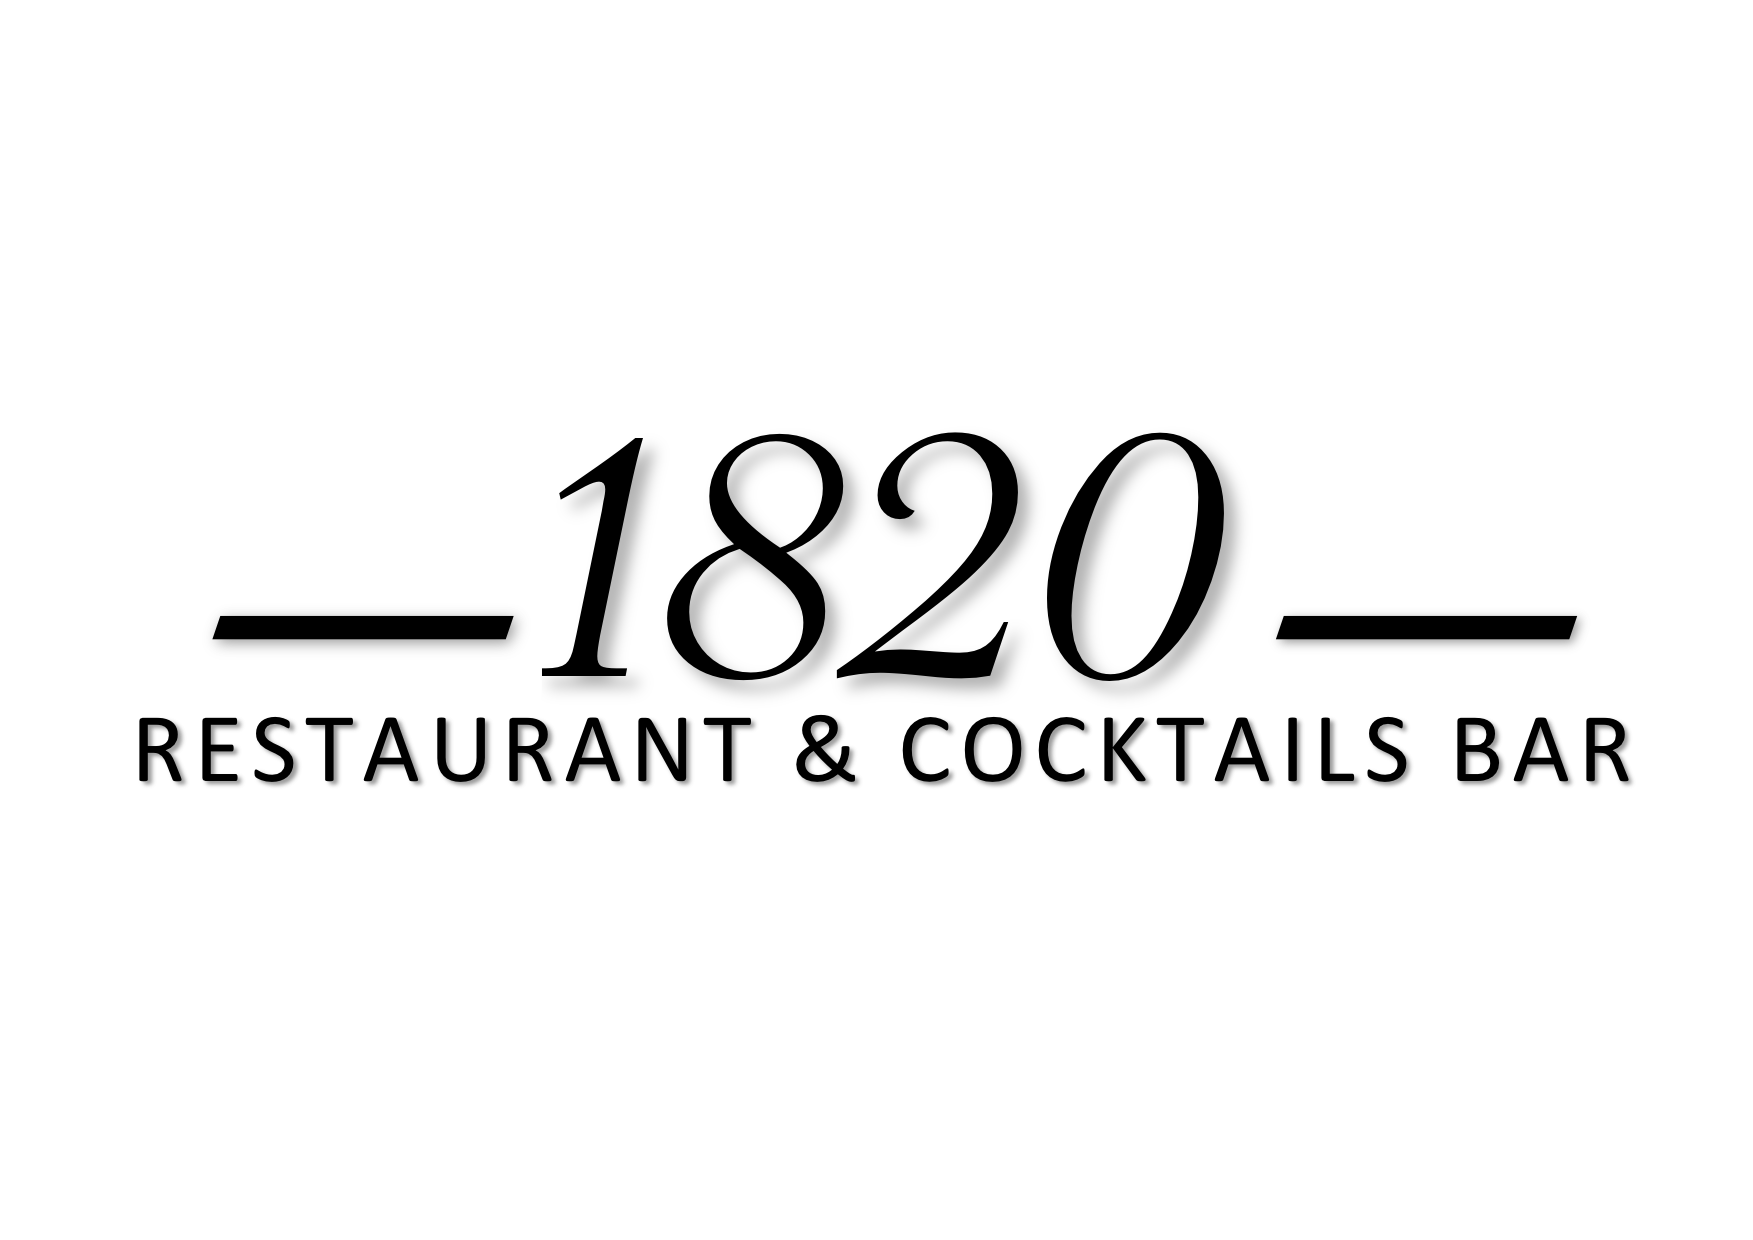 1820 Restaurant & Cocktails Bar